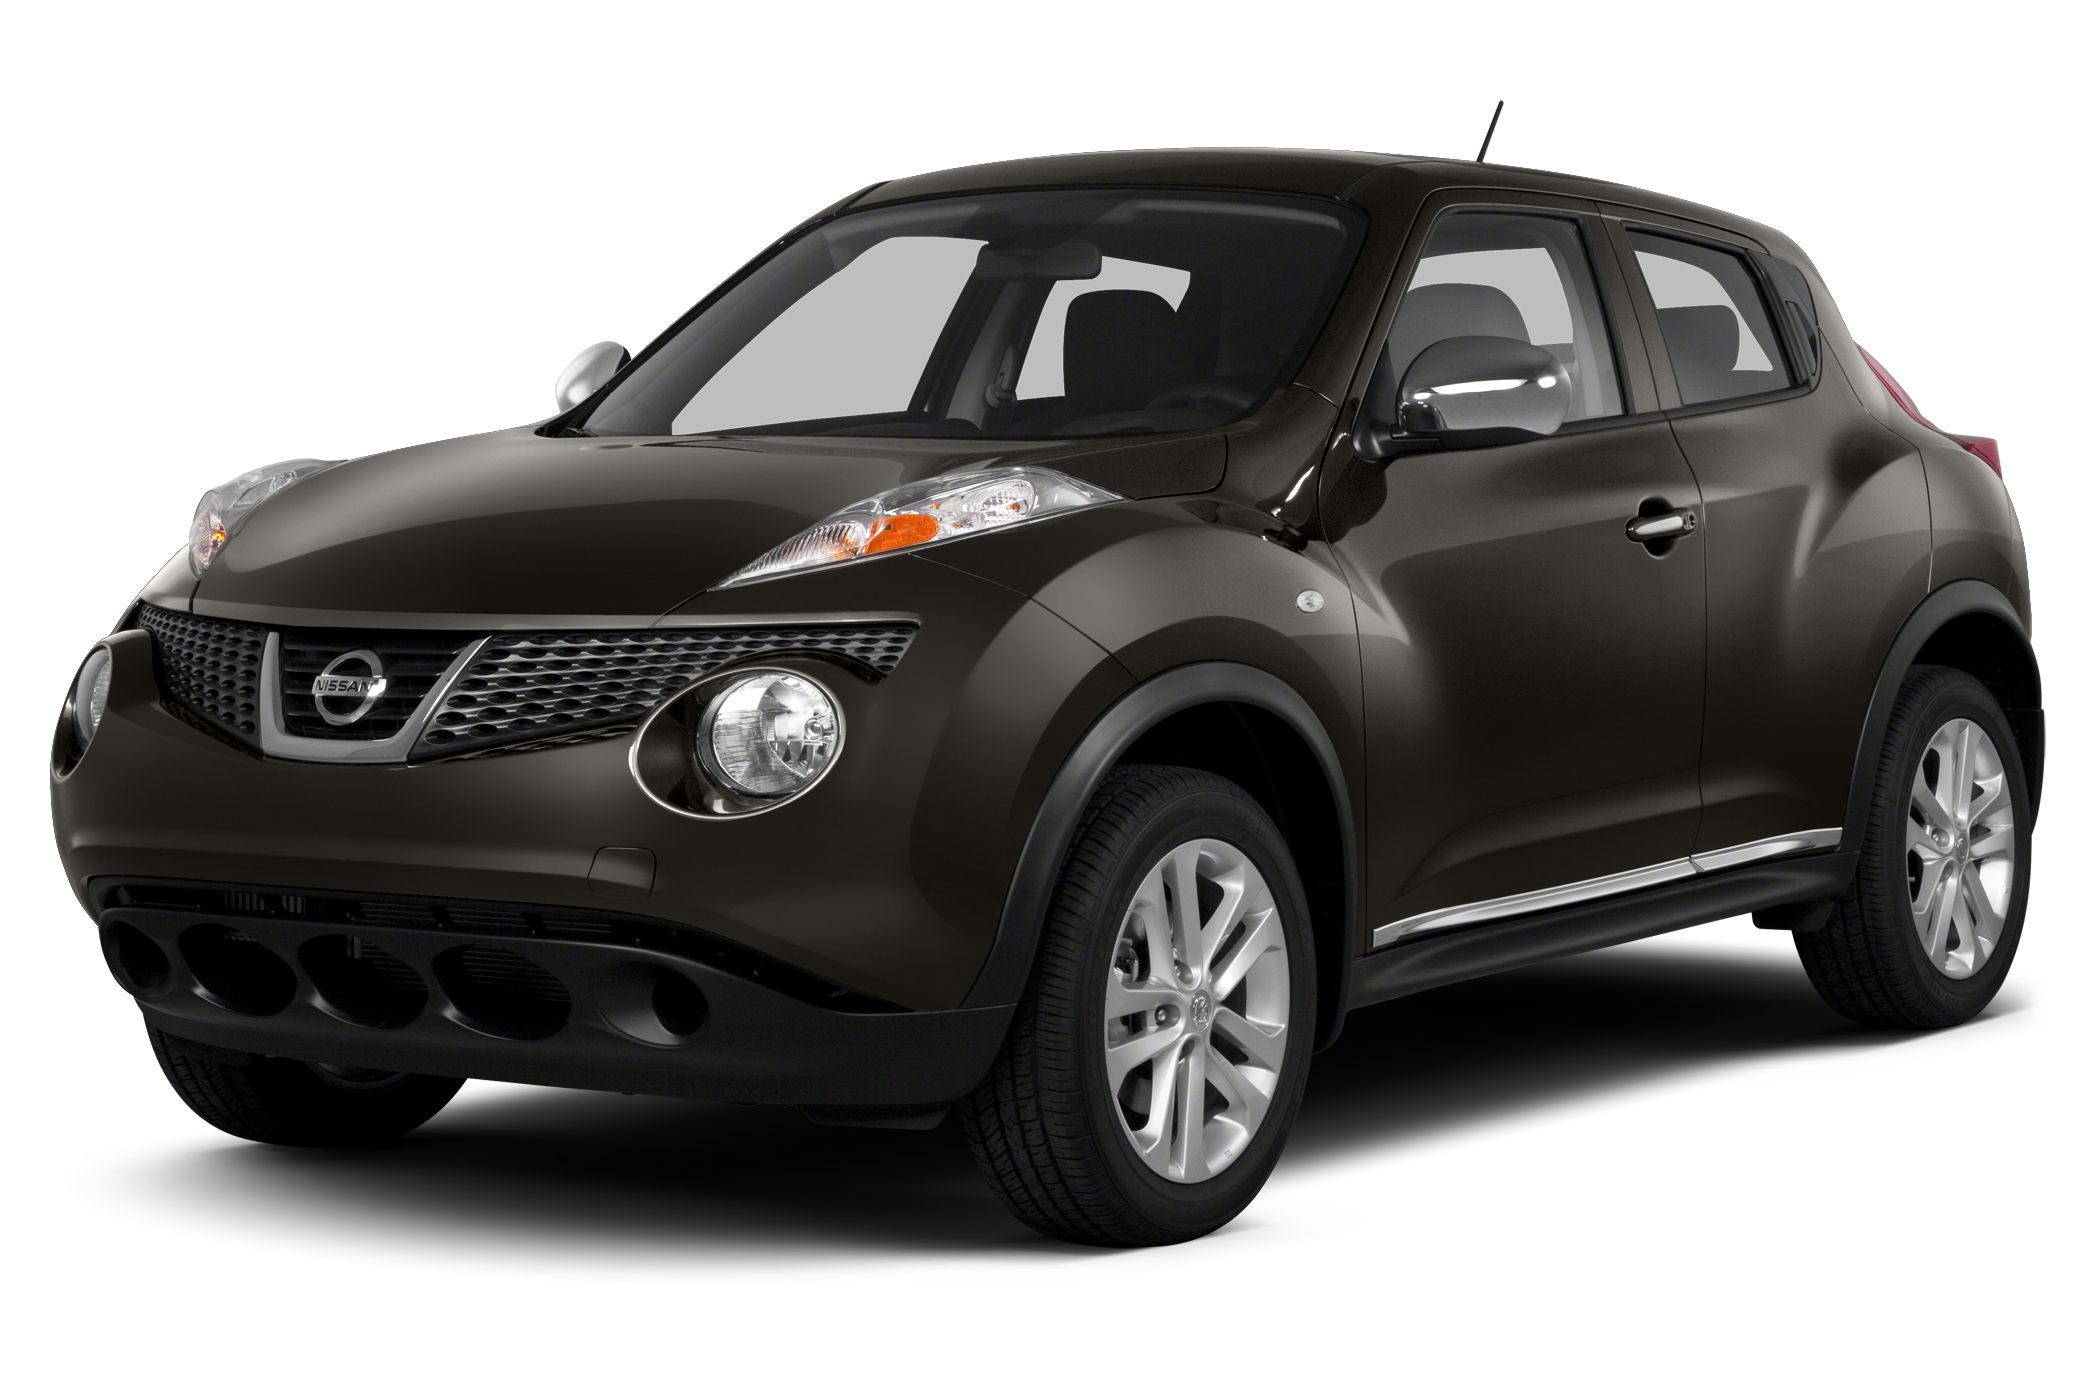 2013 Nissan Juke S SUV for sale in Milford for $17,988 with 33,836 miles.